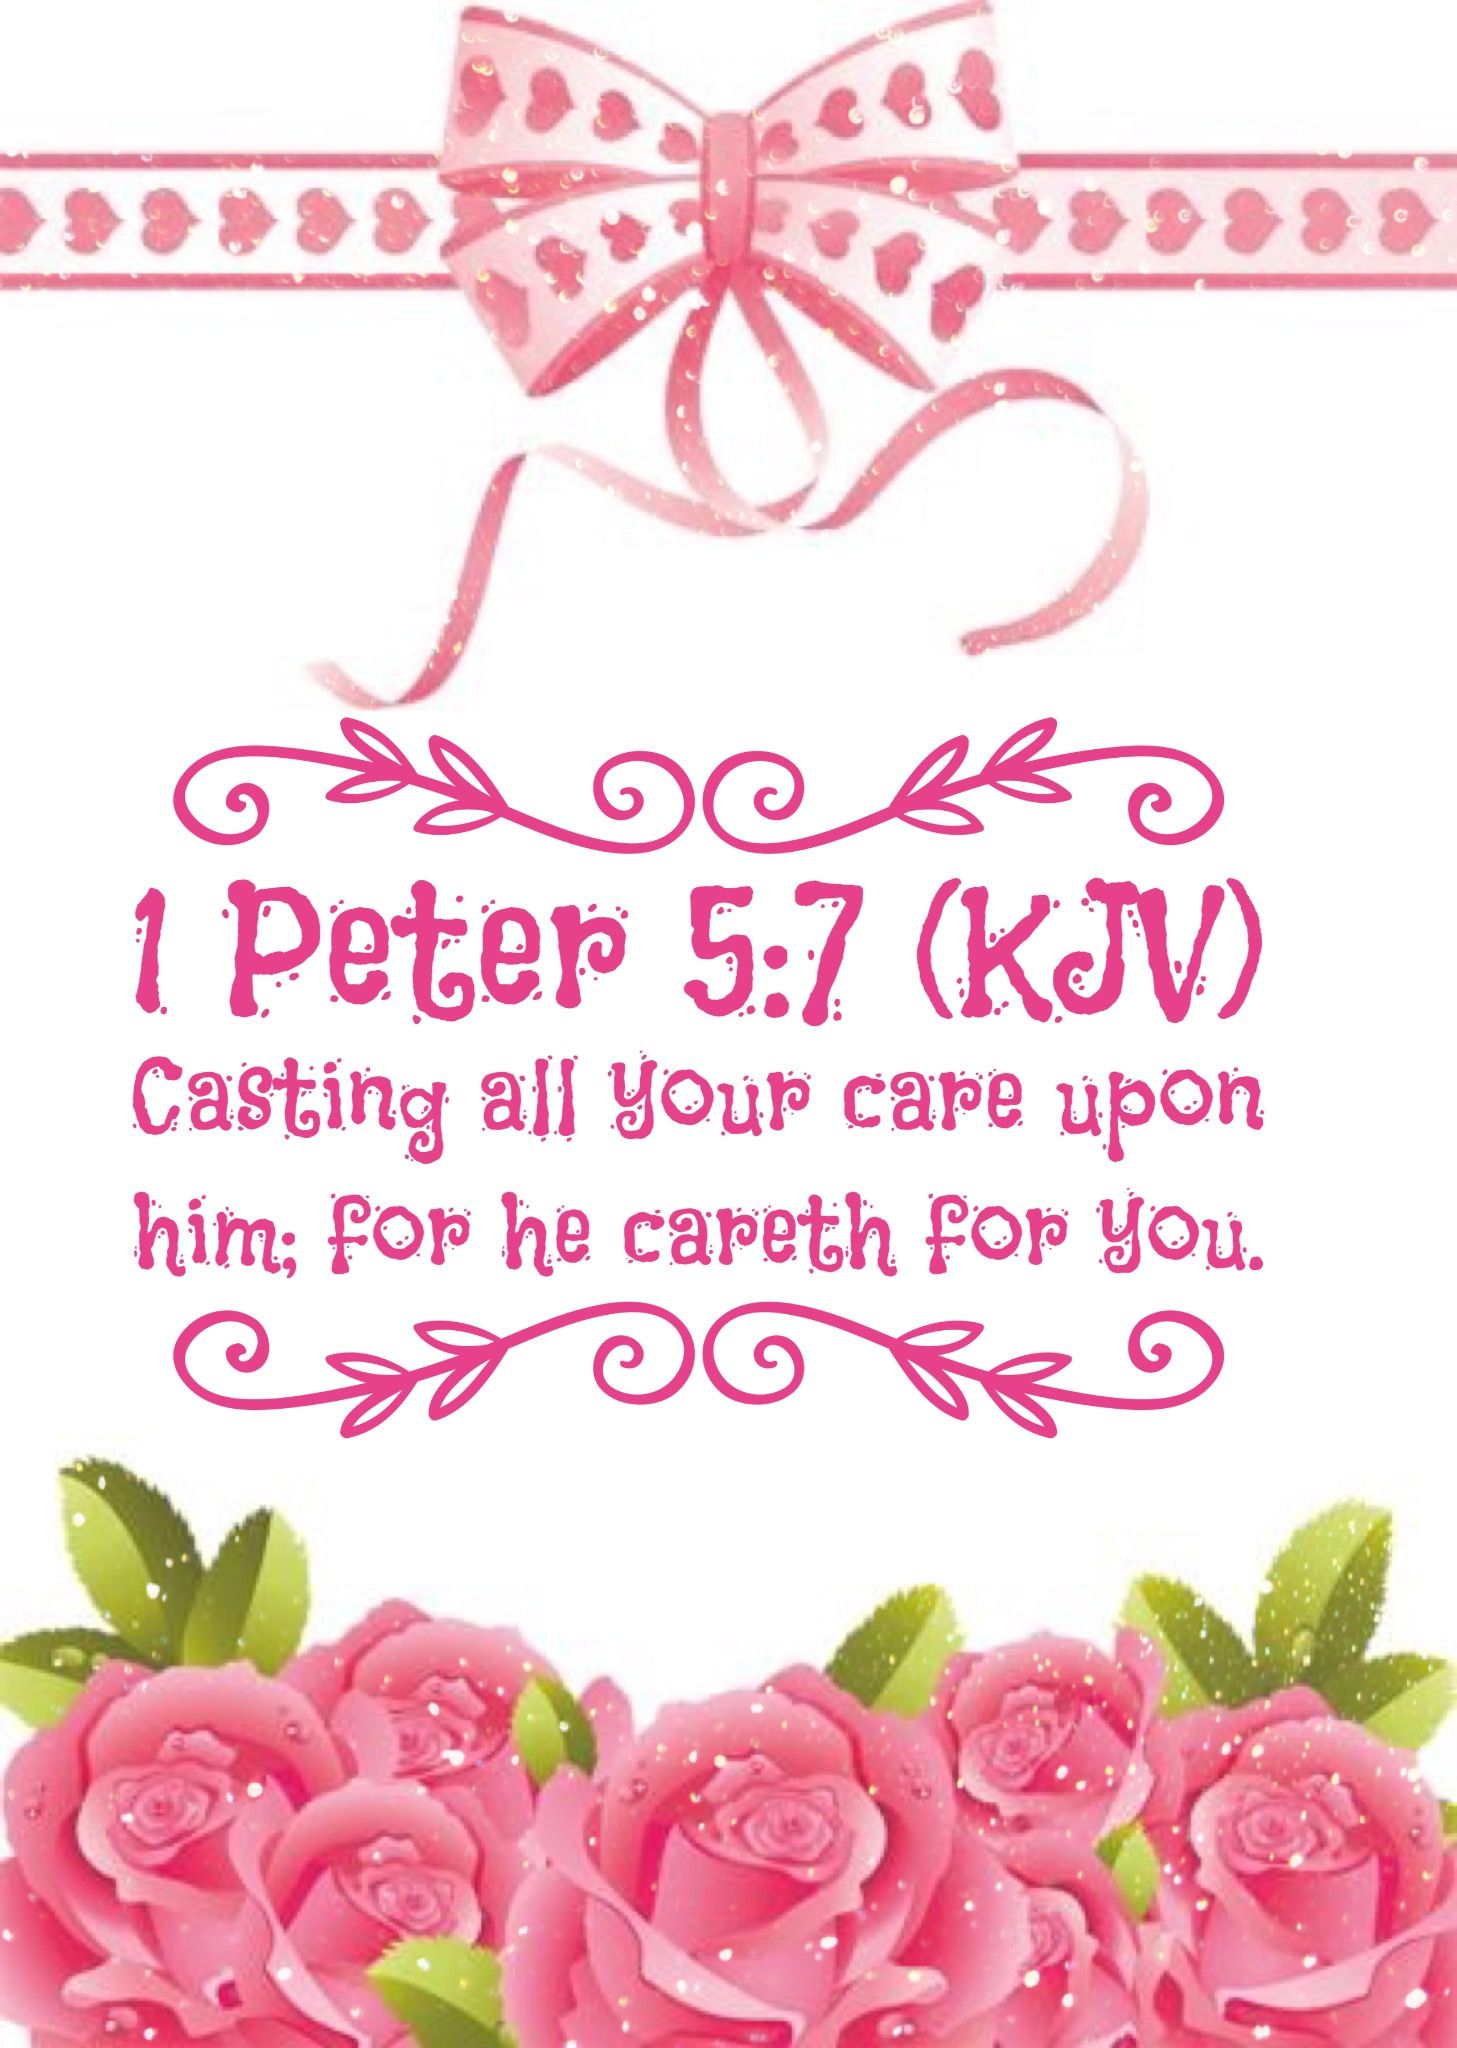 1 Peter 5:7 KJV | One In Christ | Bible verses kjv, Bible